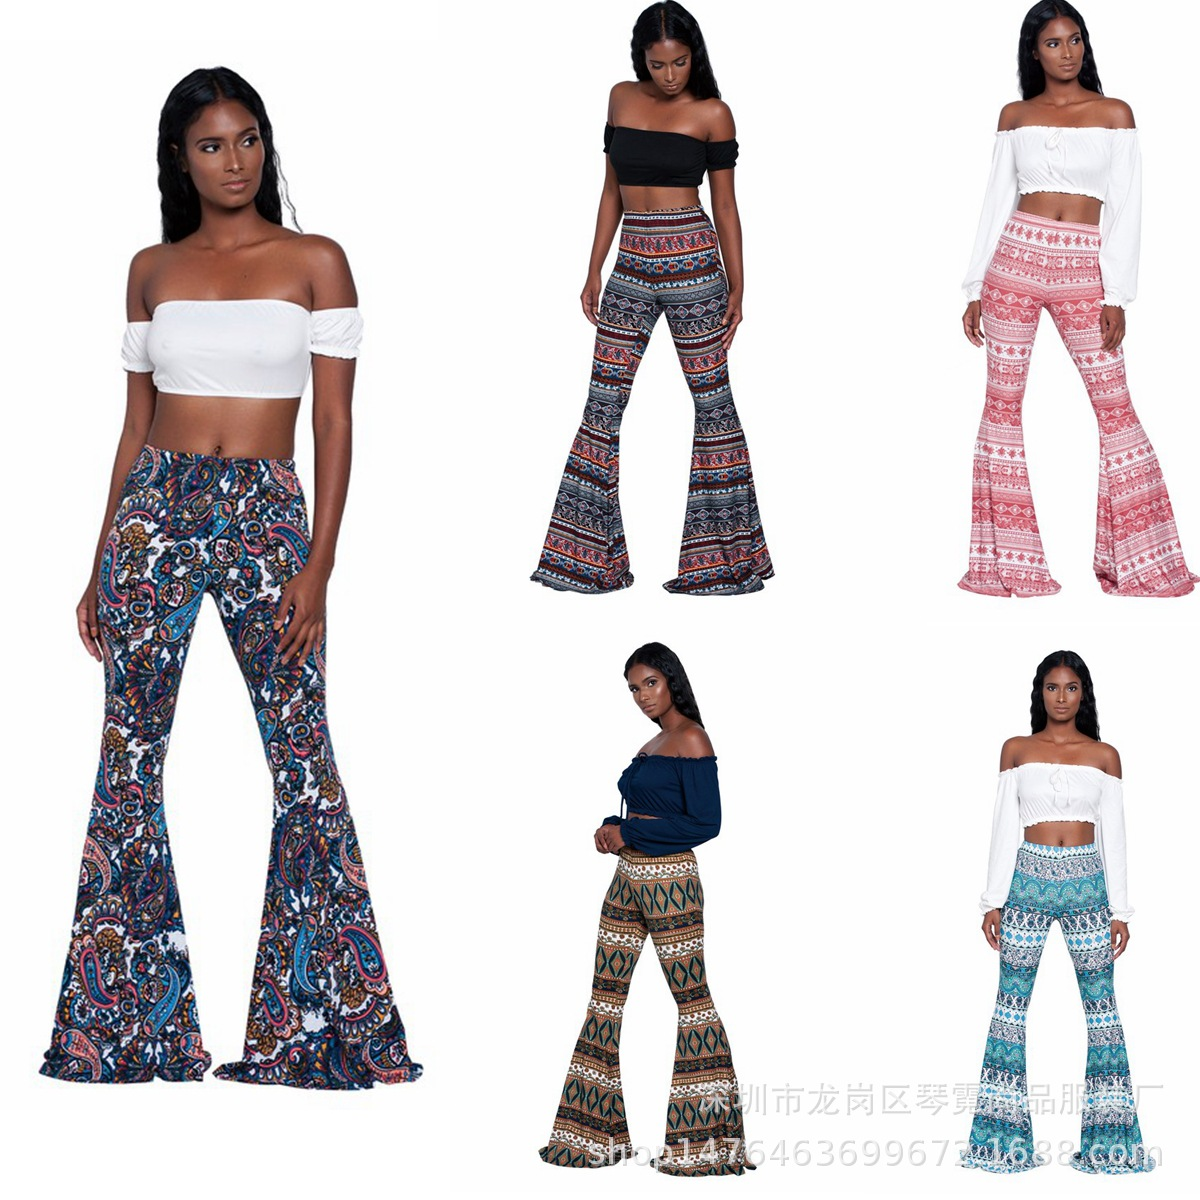 2019 EBay New Style Hot Sales Vintage Printed Bell-bottom Pants Multi-color Multi-Code Trousers